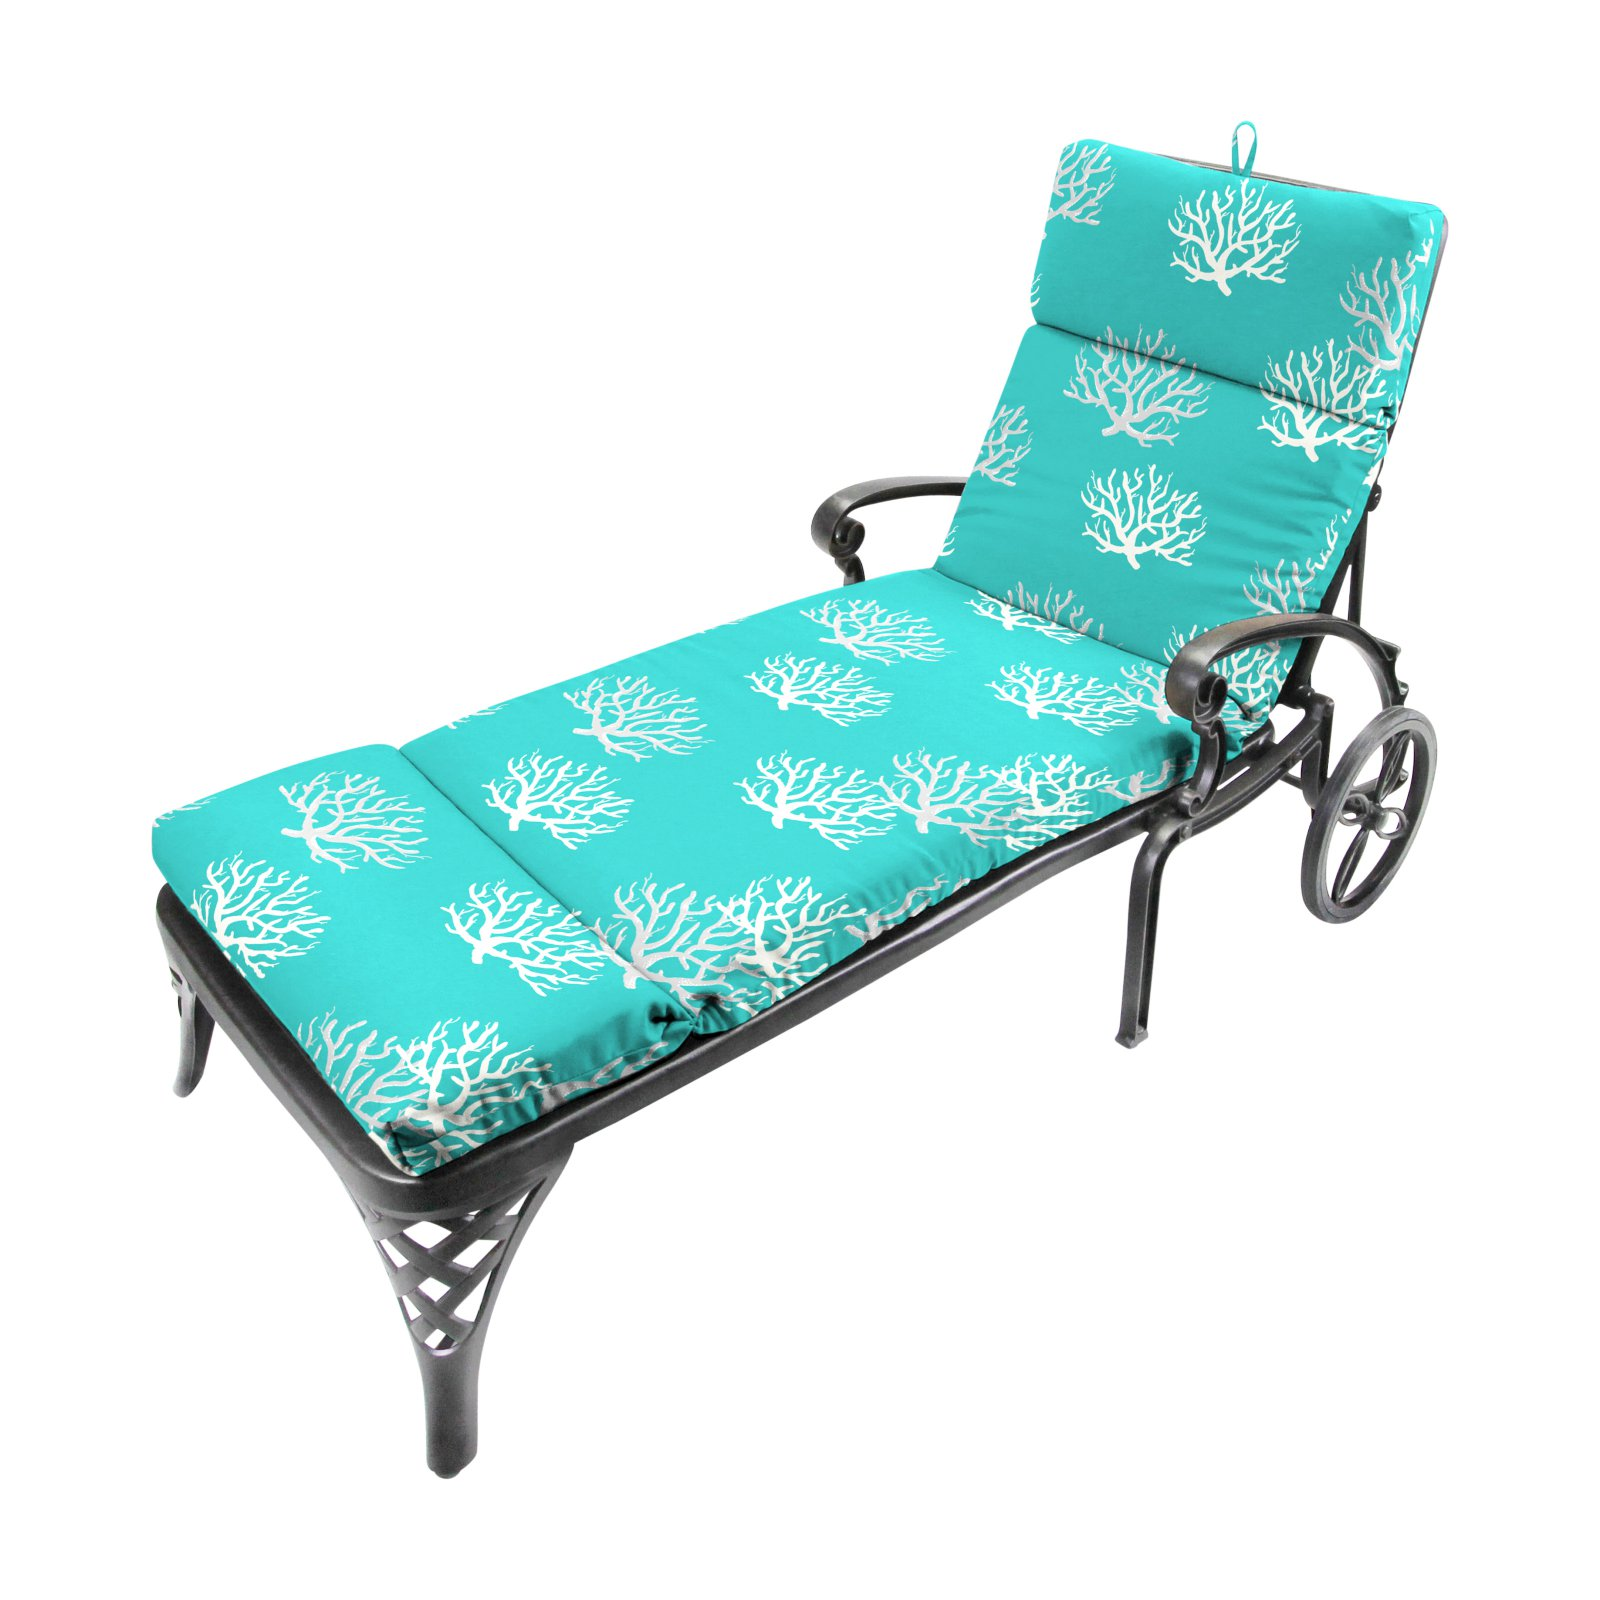 Jordan Manufacturing 72 in. Outdoor Chaise Cushion - Isadella Ocean